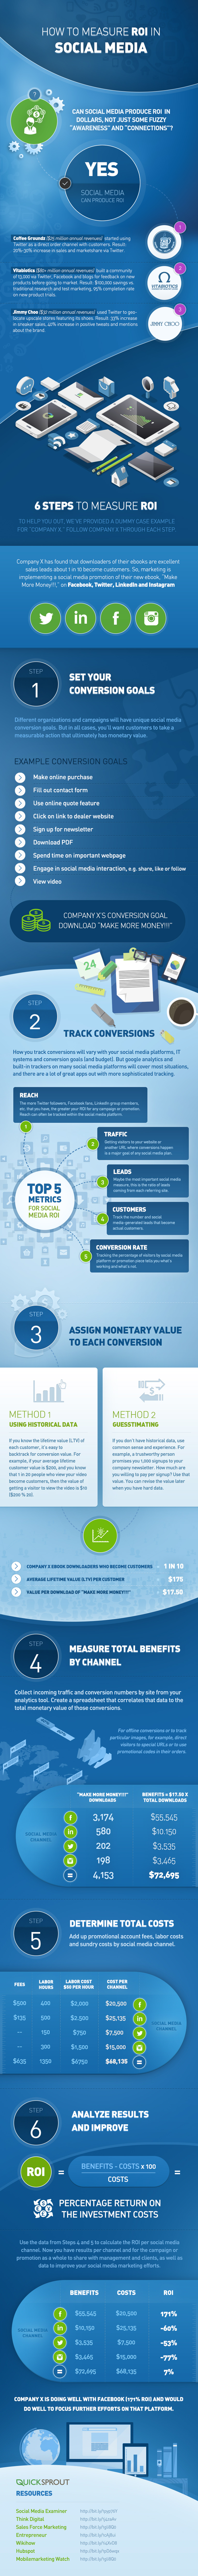 How to Calculate the ROI of Your Social Media Campaigns